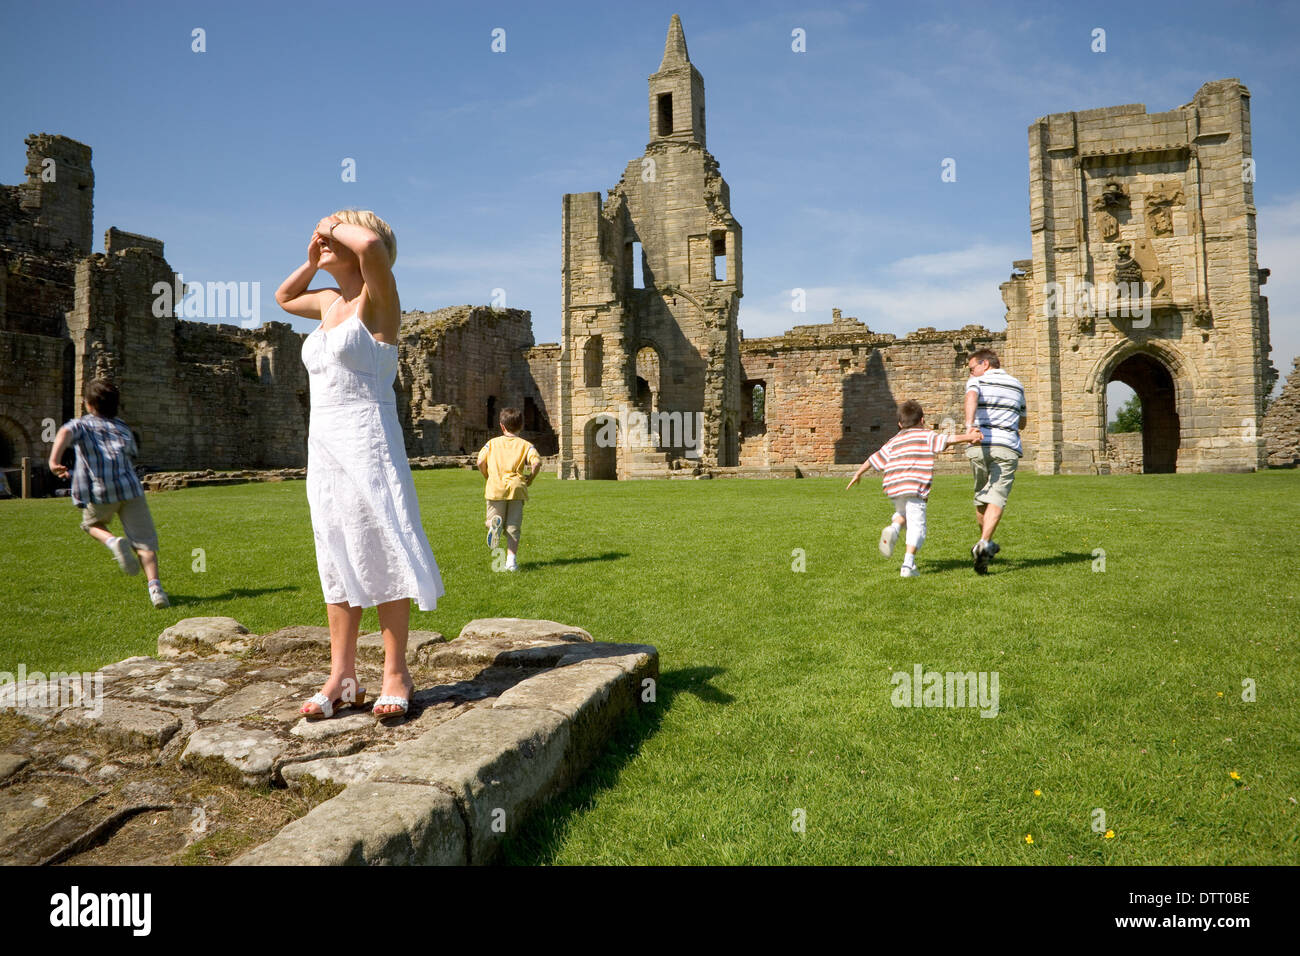 Family playing hide and seek at Warkworth Castle, Northumberland. Stock Photo